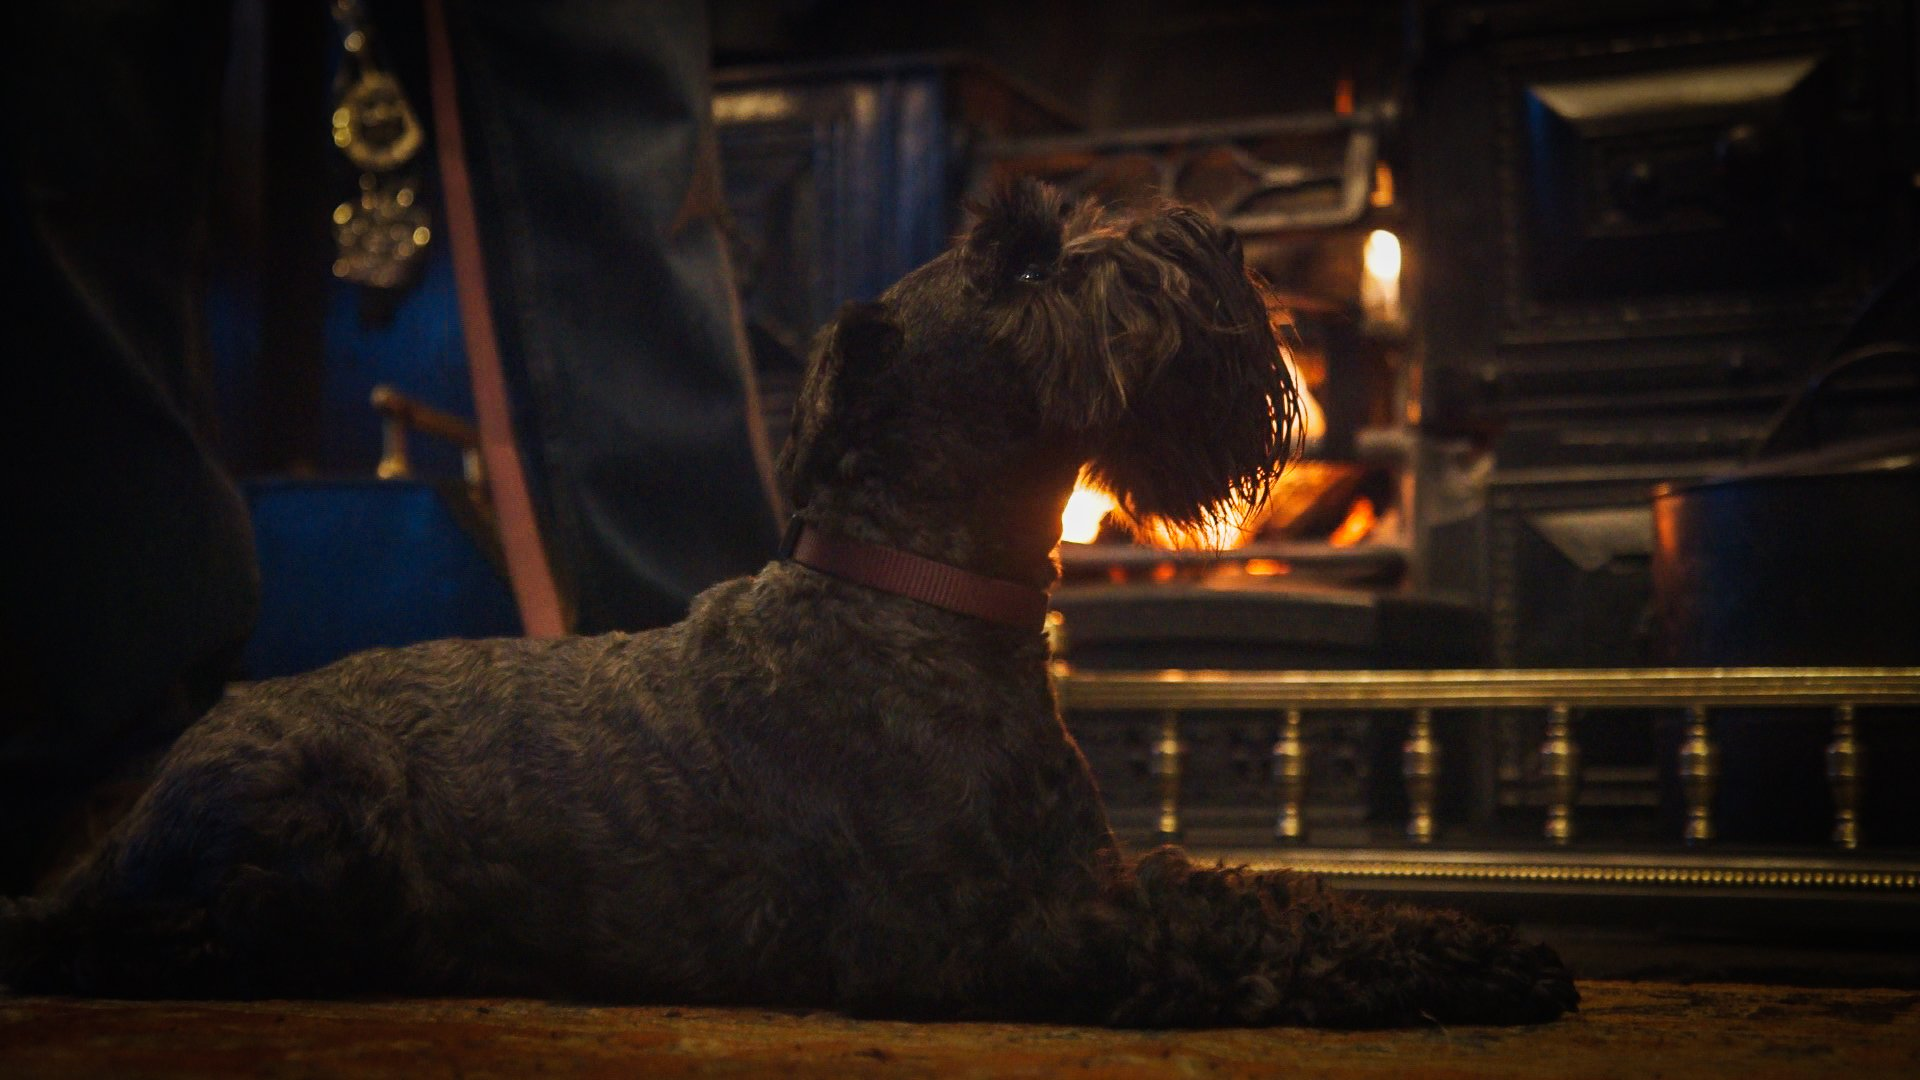 The bar is cosy and dog friendly